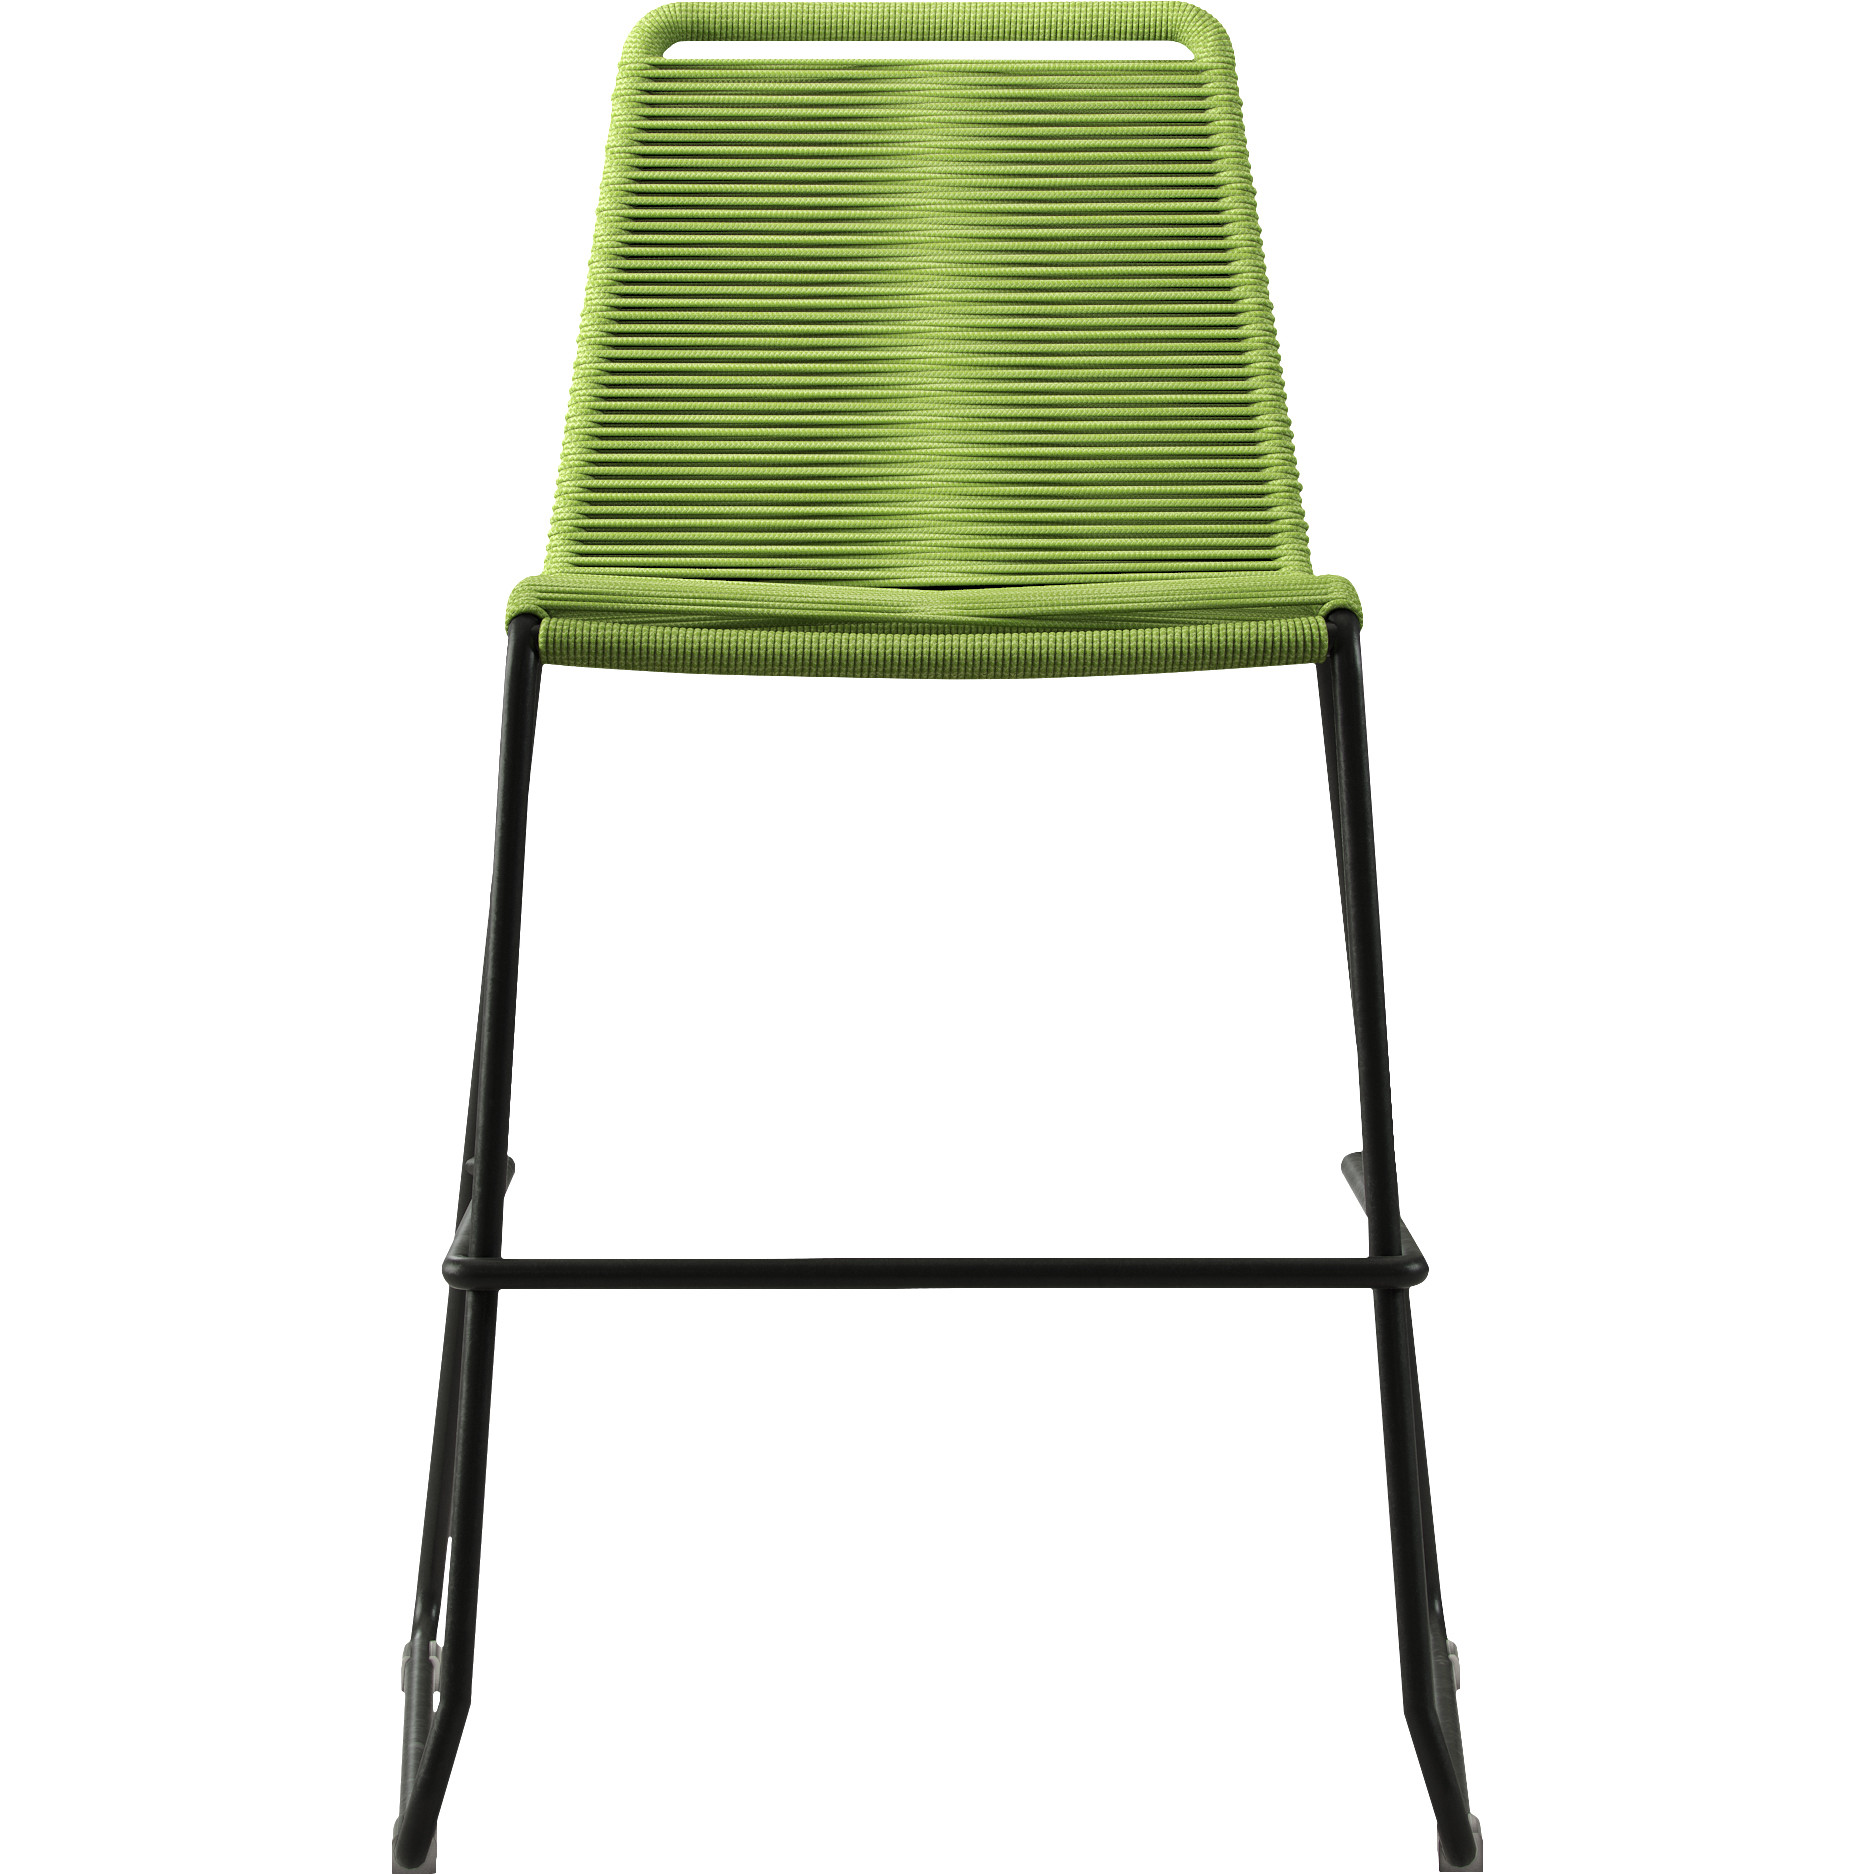 Top 7 Green Bar Stools For Your Home Cute Furniture : Modloft Barclay 25 Counter Stool from www.cute-furniture.com size 1874 x 1874 jpeg 373kB